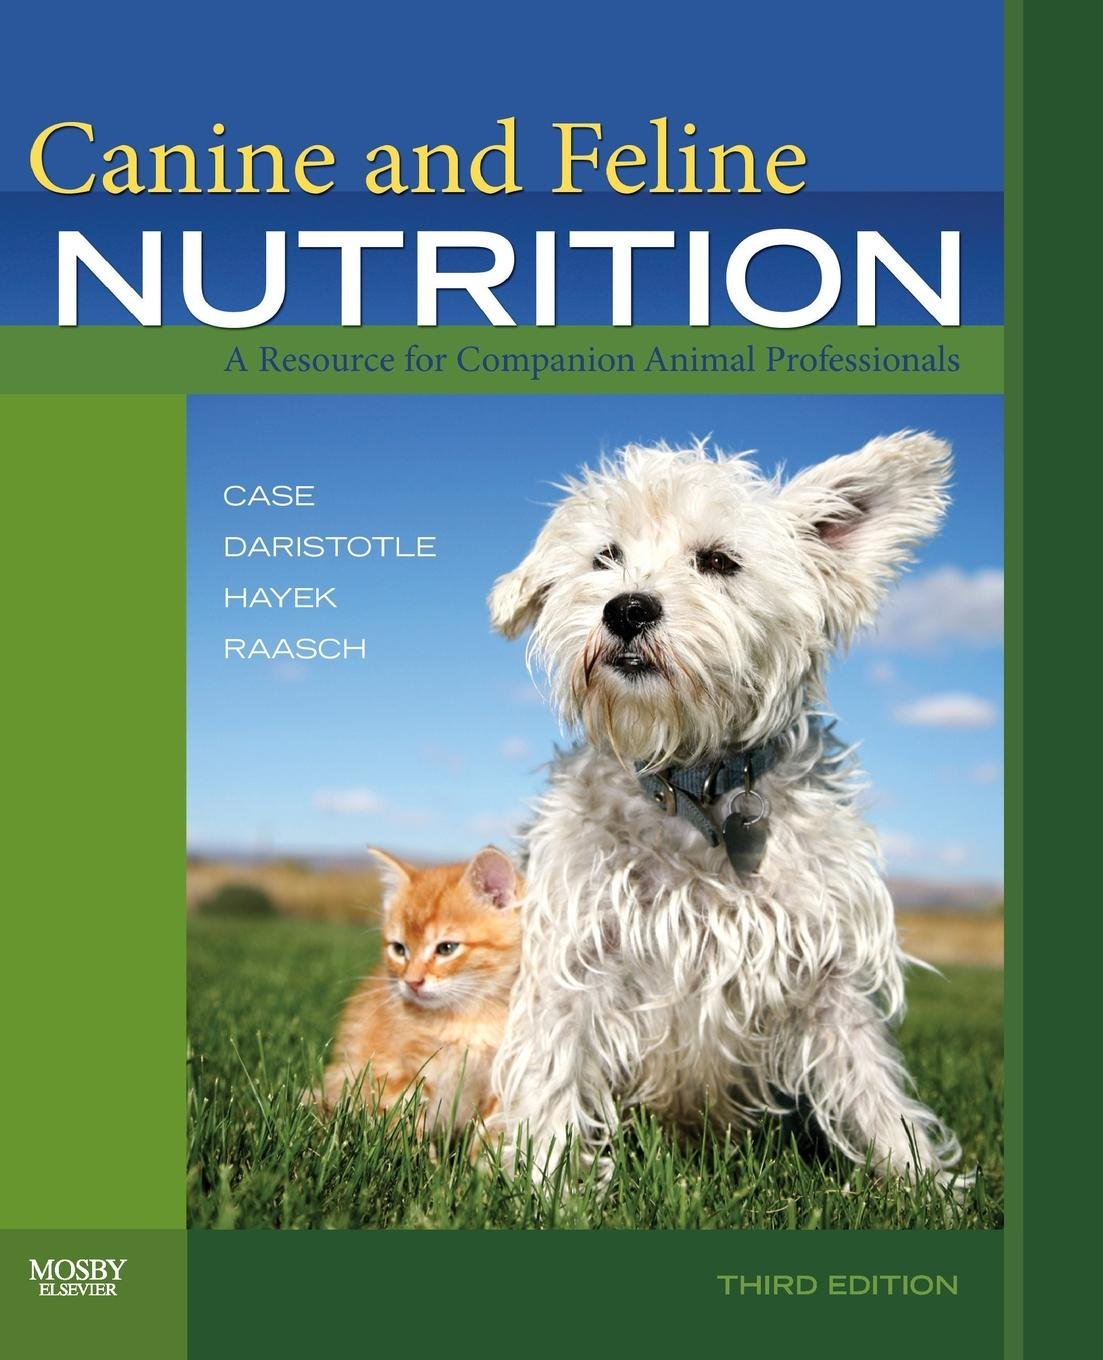 Canine and Feline Nutrition: A Resource for Companion Animal Professionals